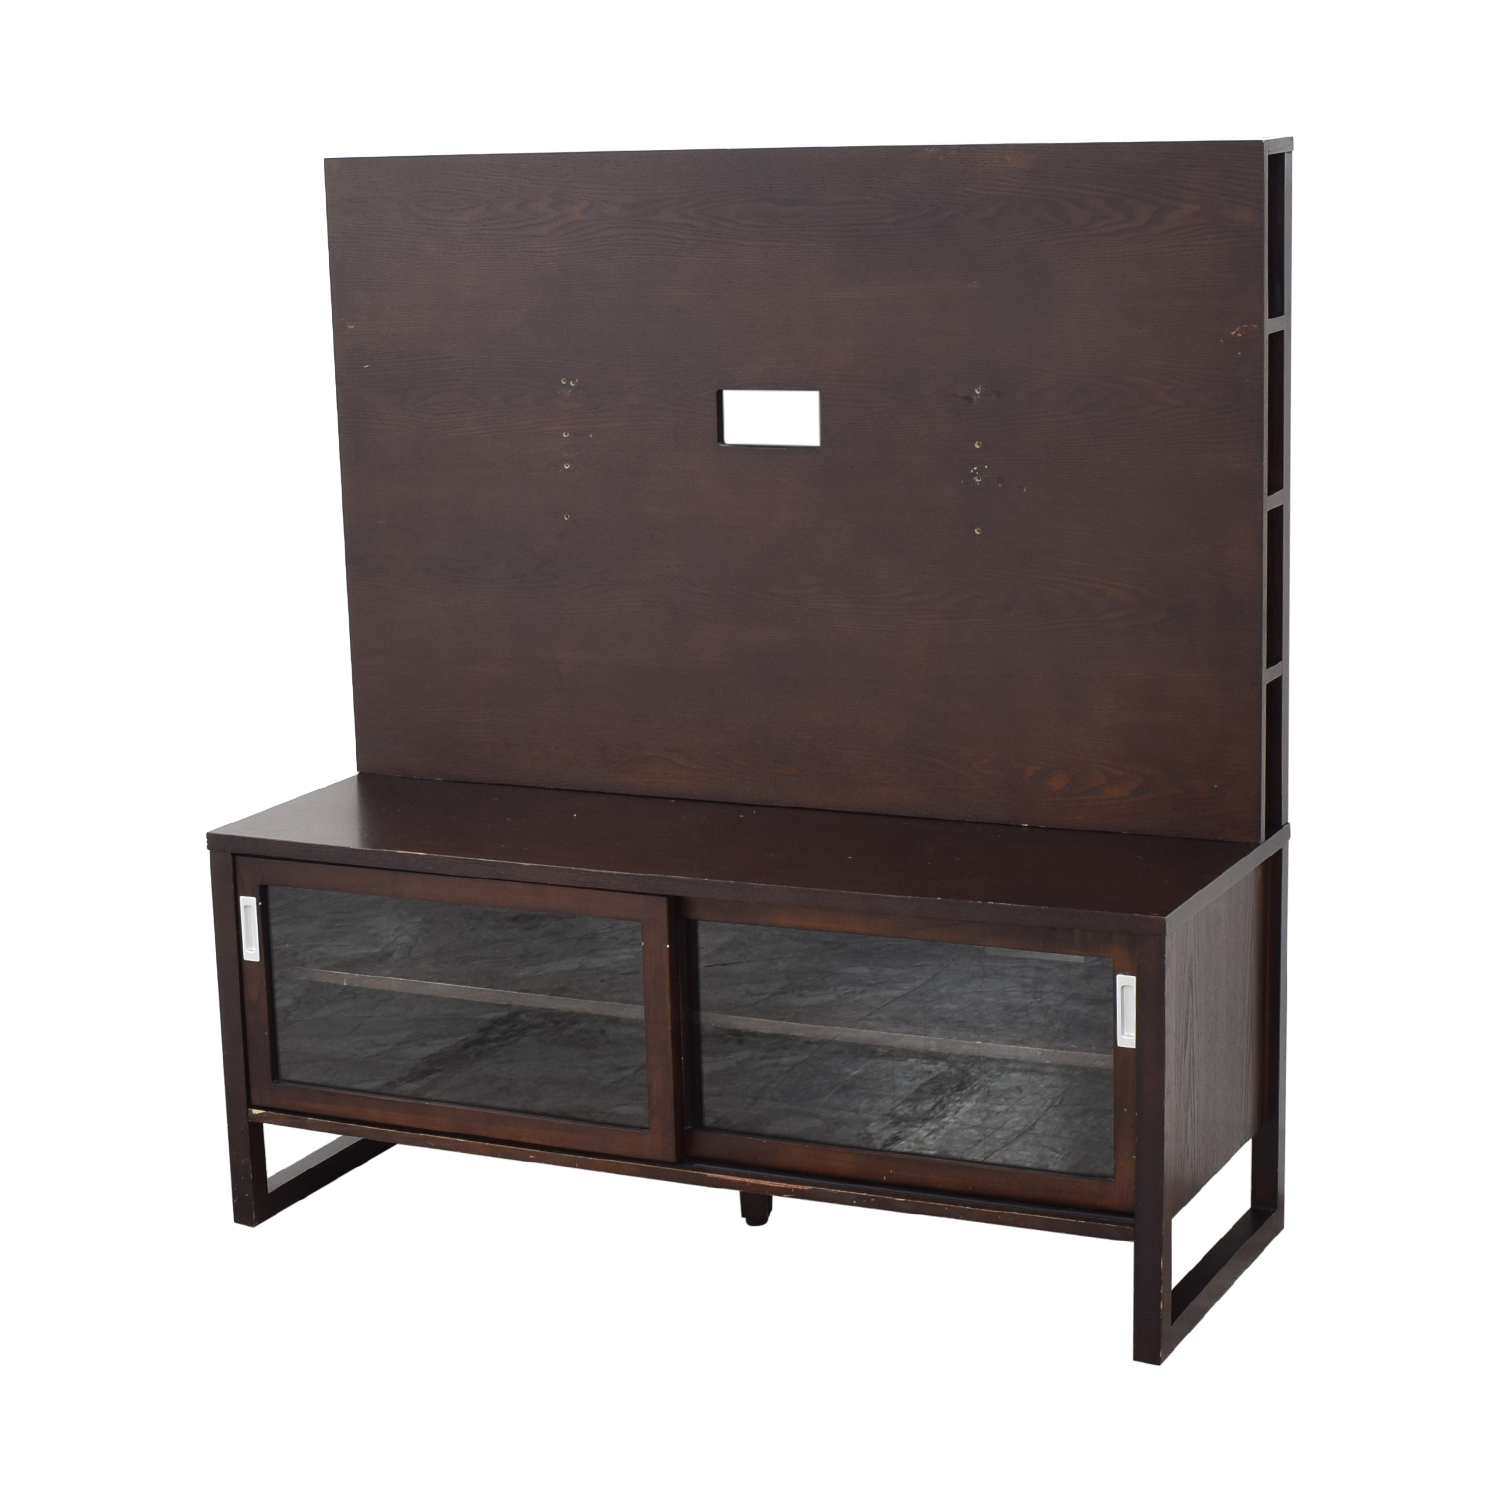 Crate & Barrel Crate & Barrel Entertainment Console with Back Panel